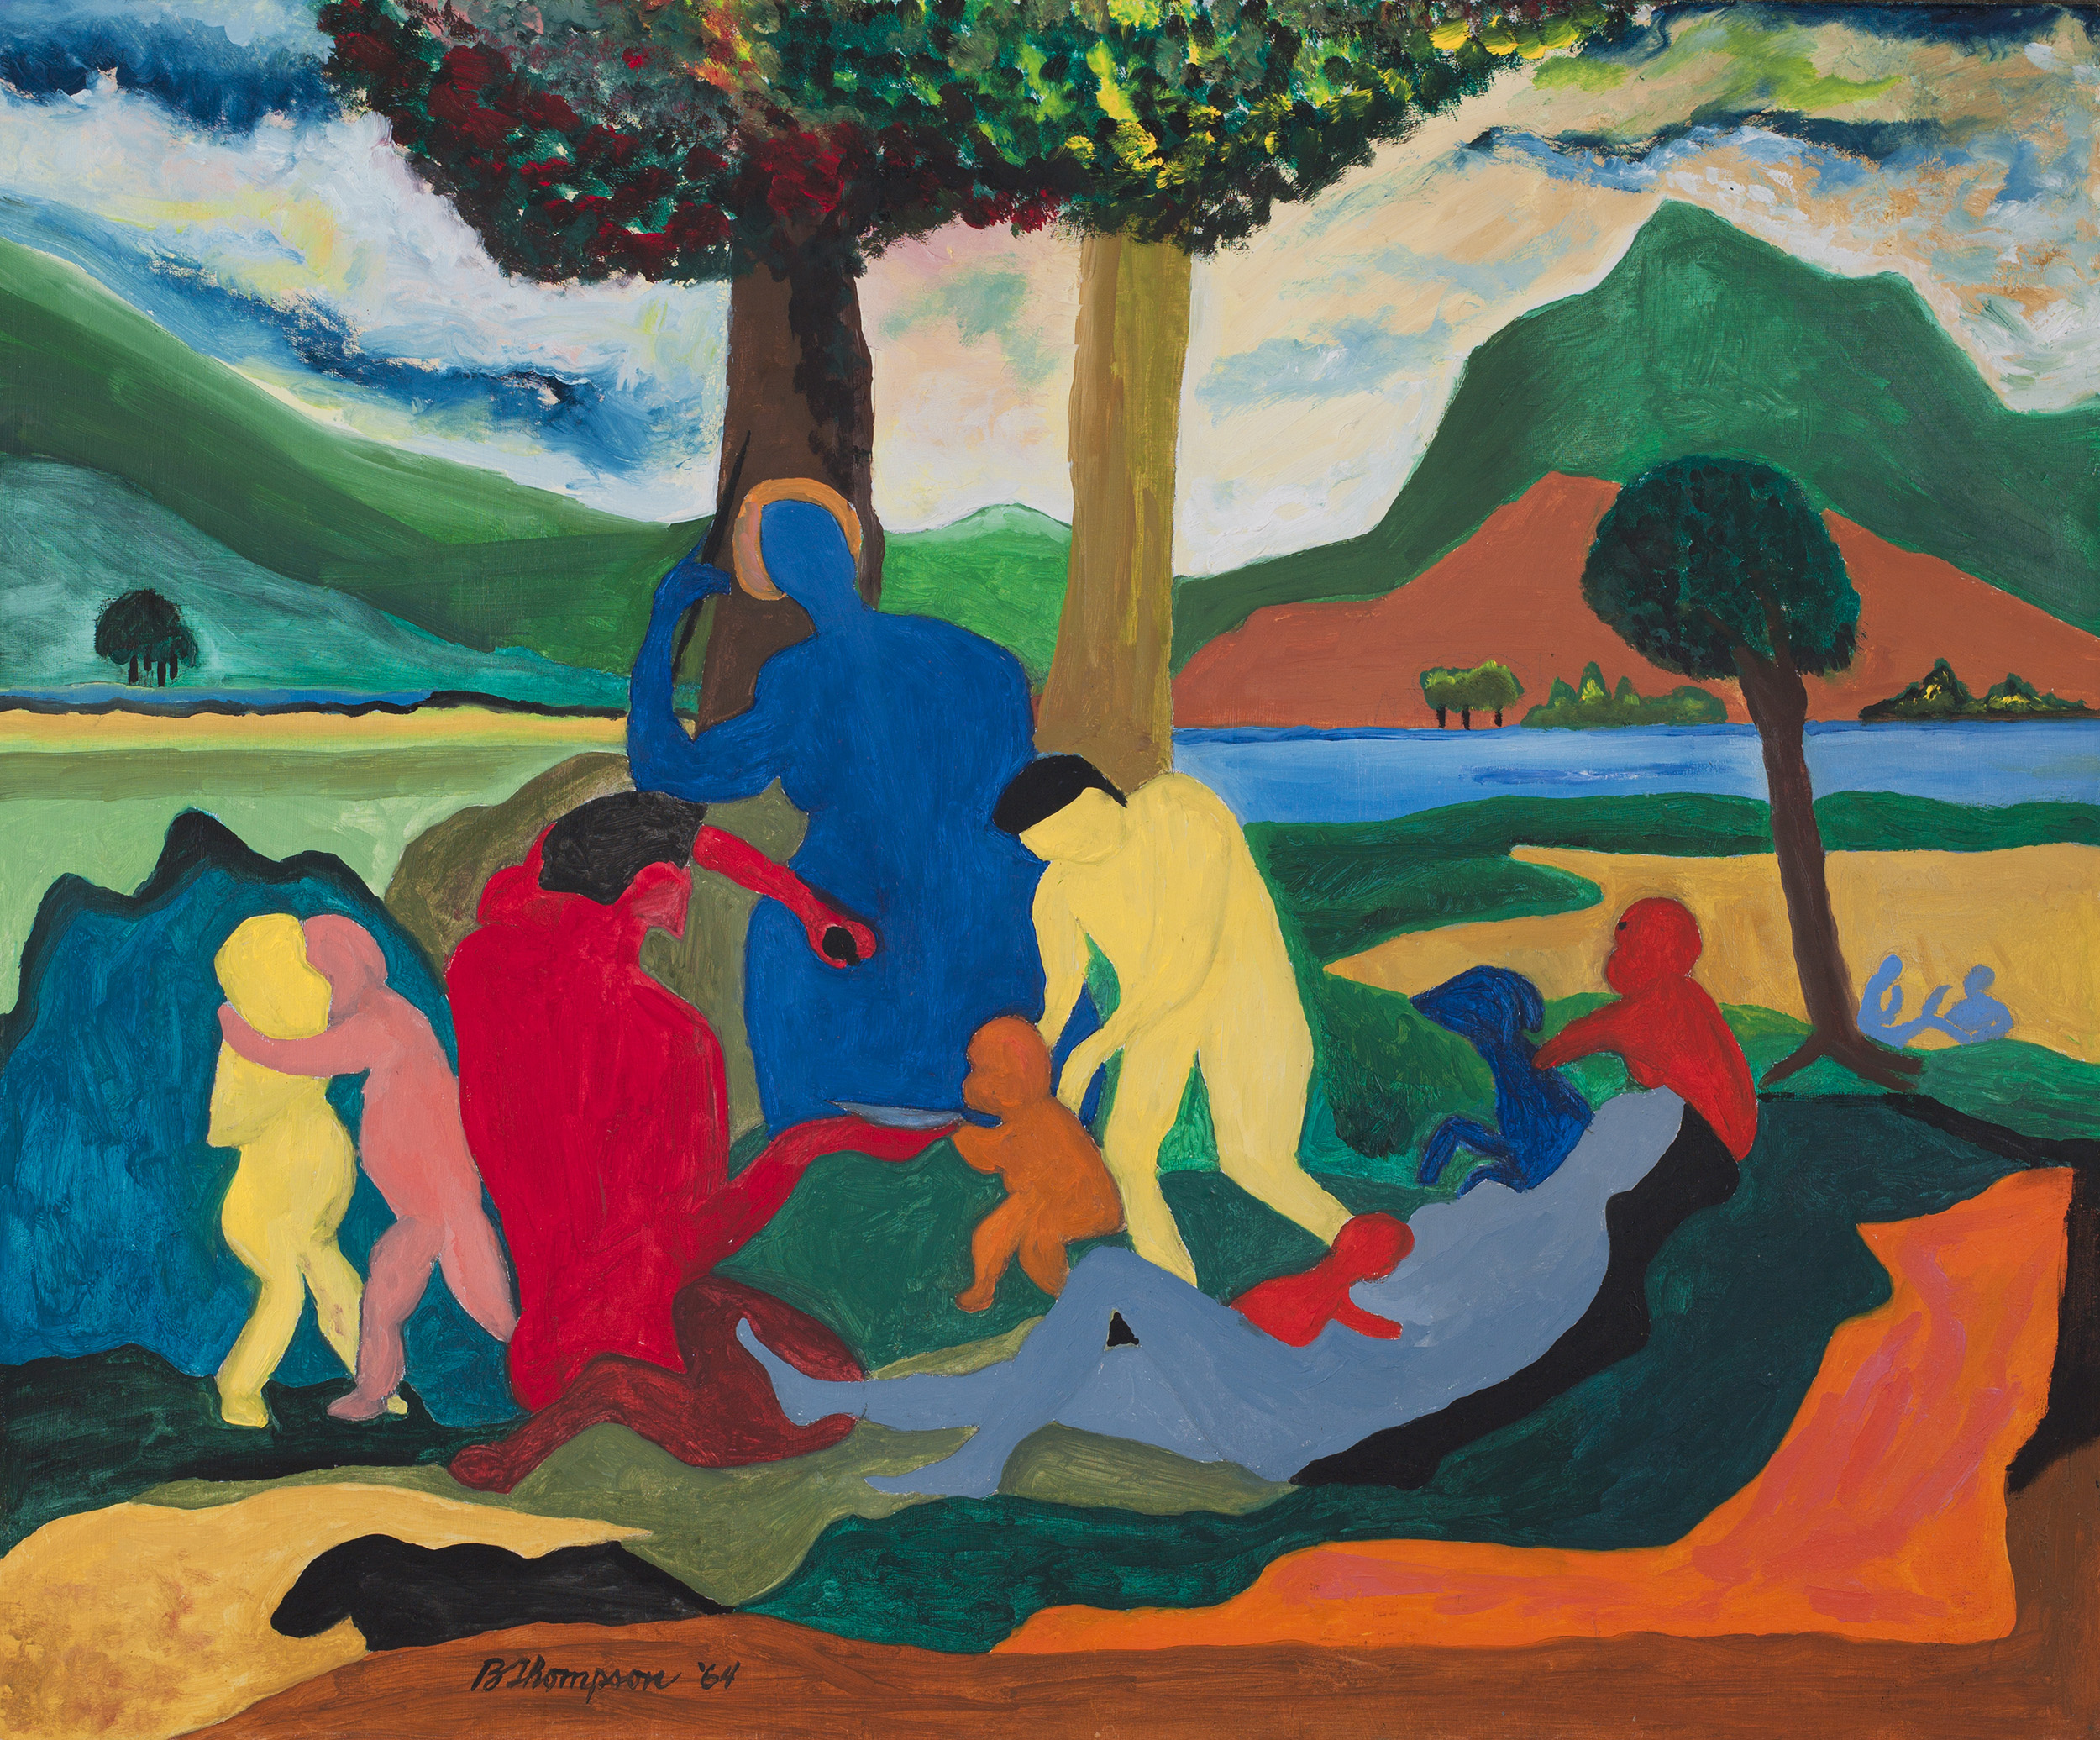 Figures with Blue Saint,   1964, Oil on masonite, 19 x 23 inches